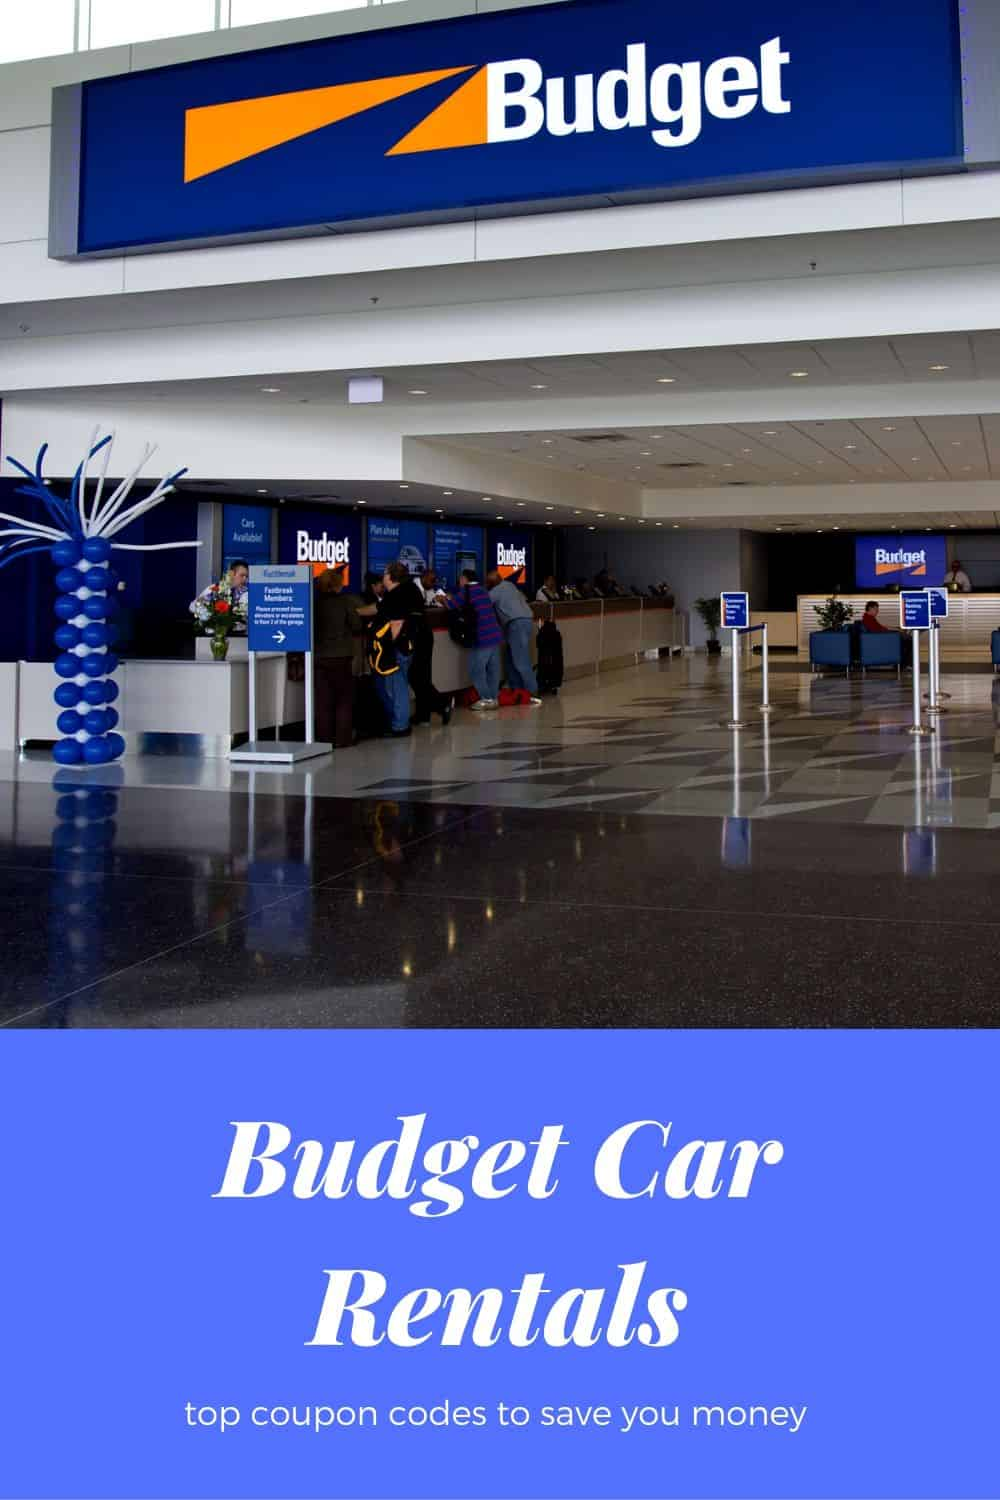 The Best Budget Bcd Codes To Save Money On Car Rentals In 2021 Going Awesome Places